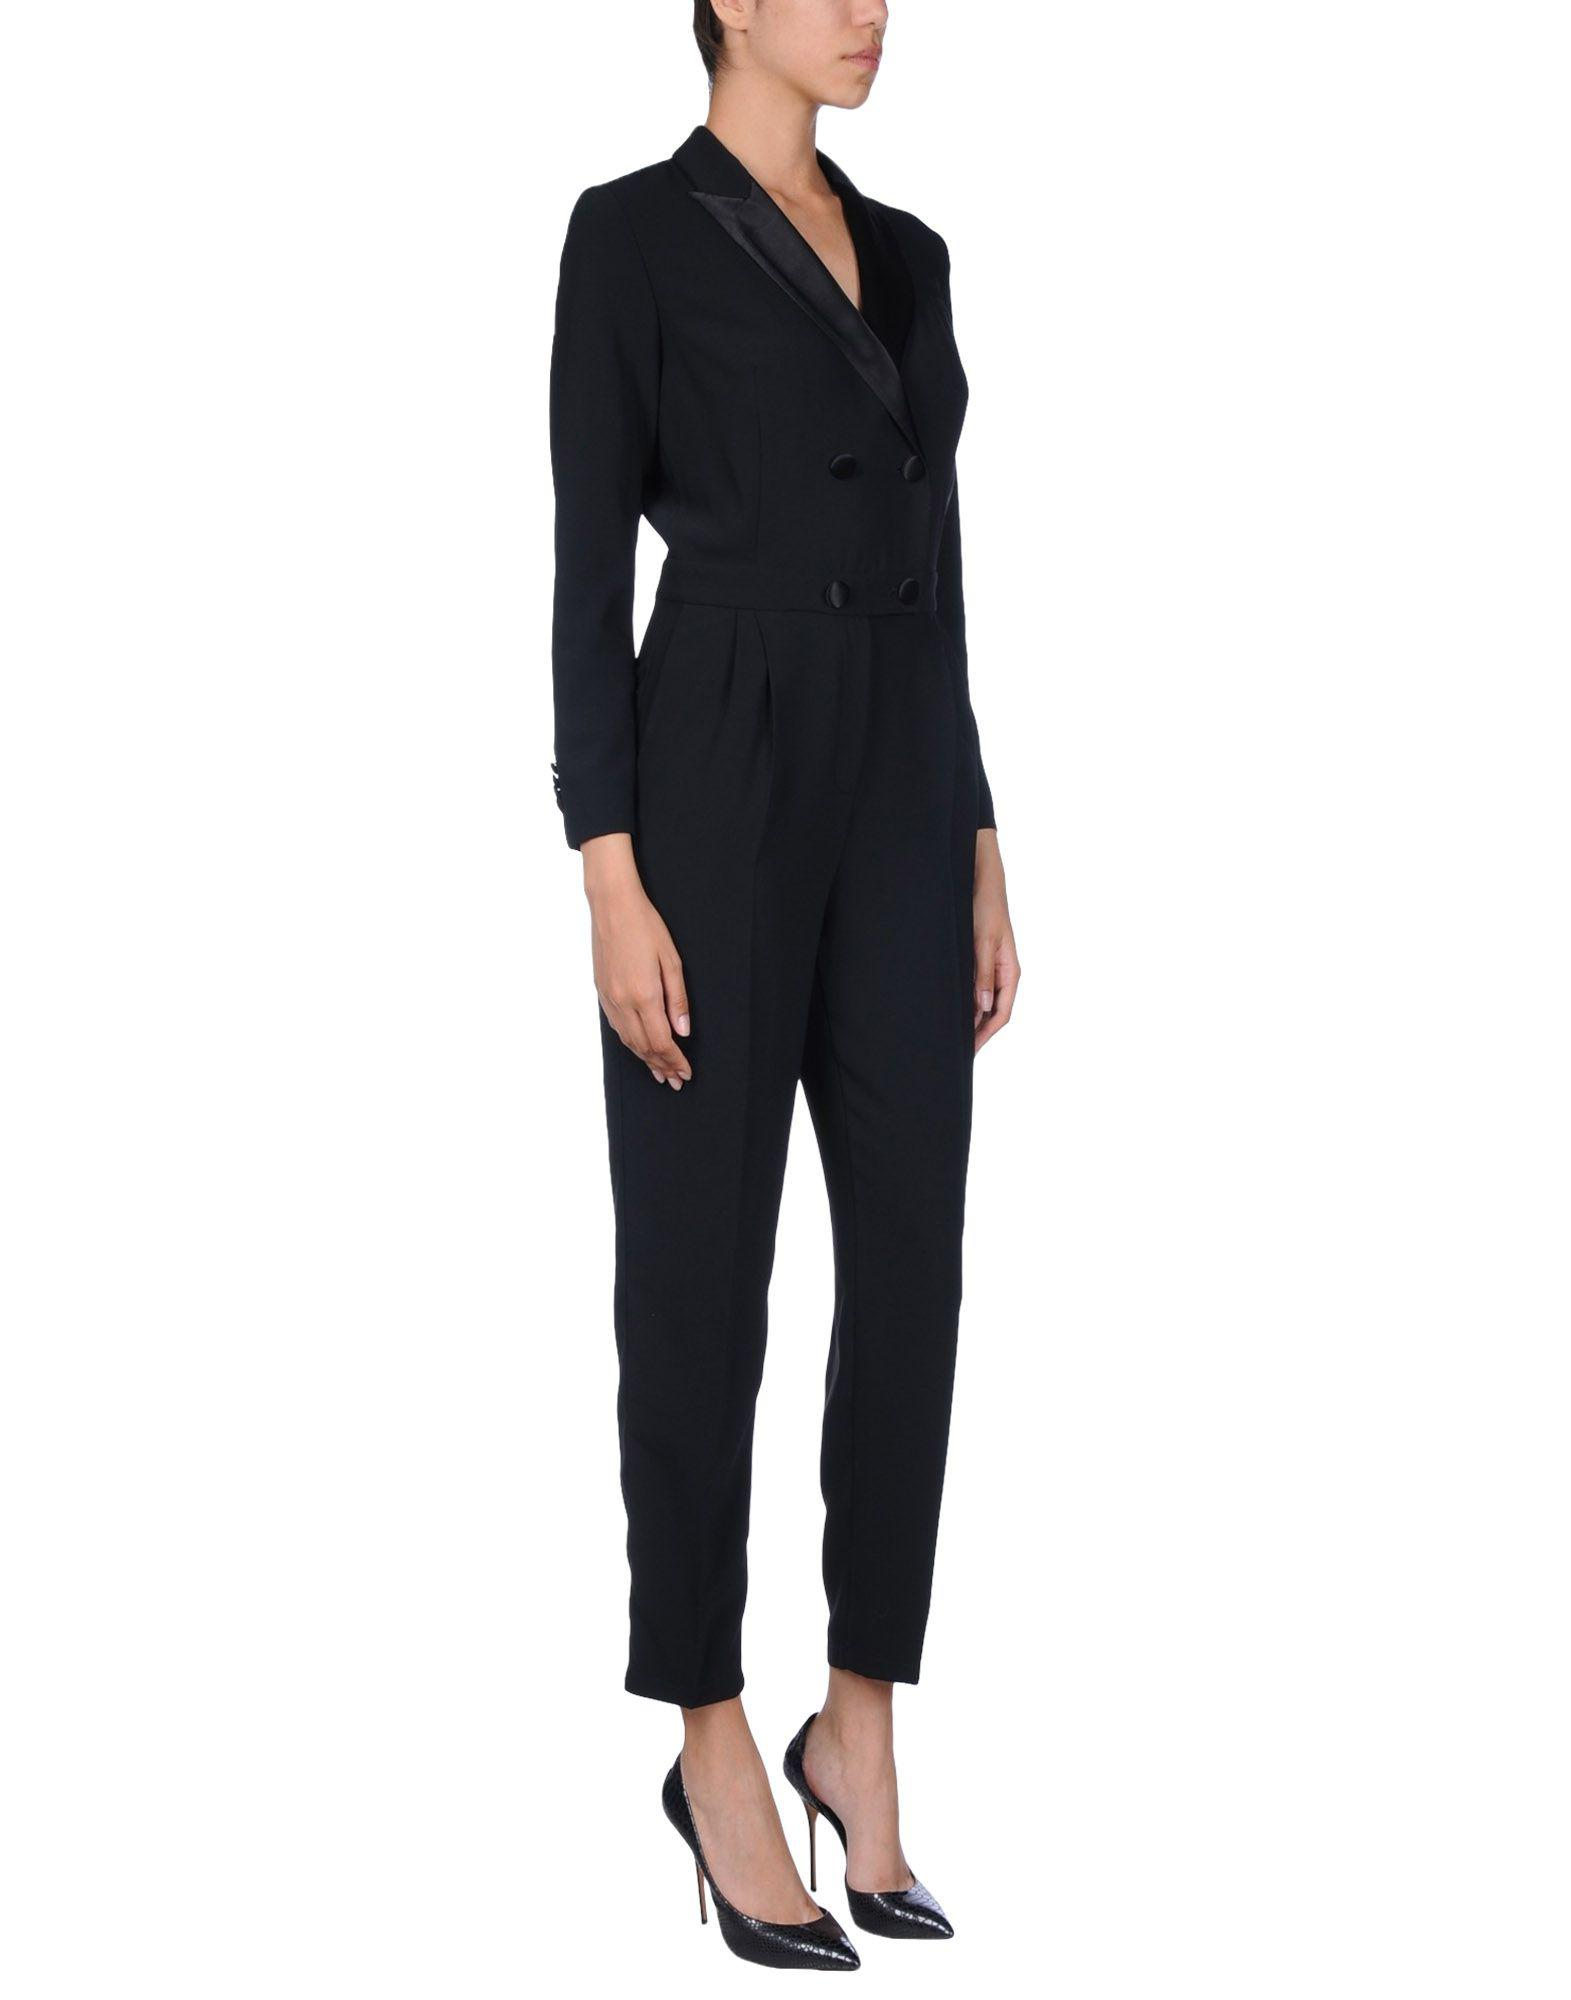 DUNGAREES - Jumpsuits Alexander Terekhov Free Shipping In China mNRyEIa7JQ